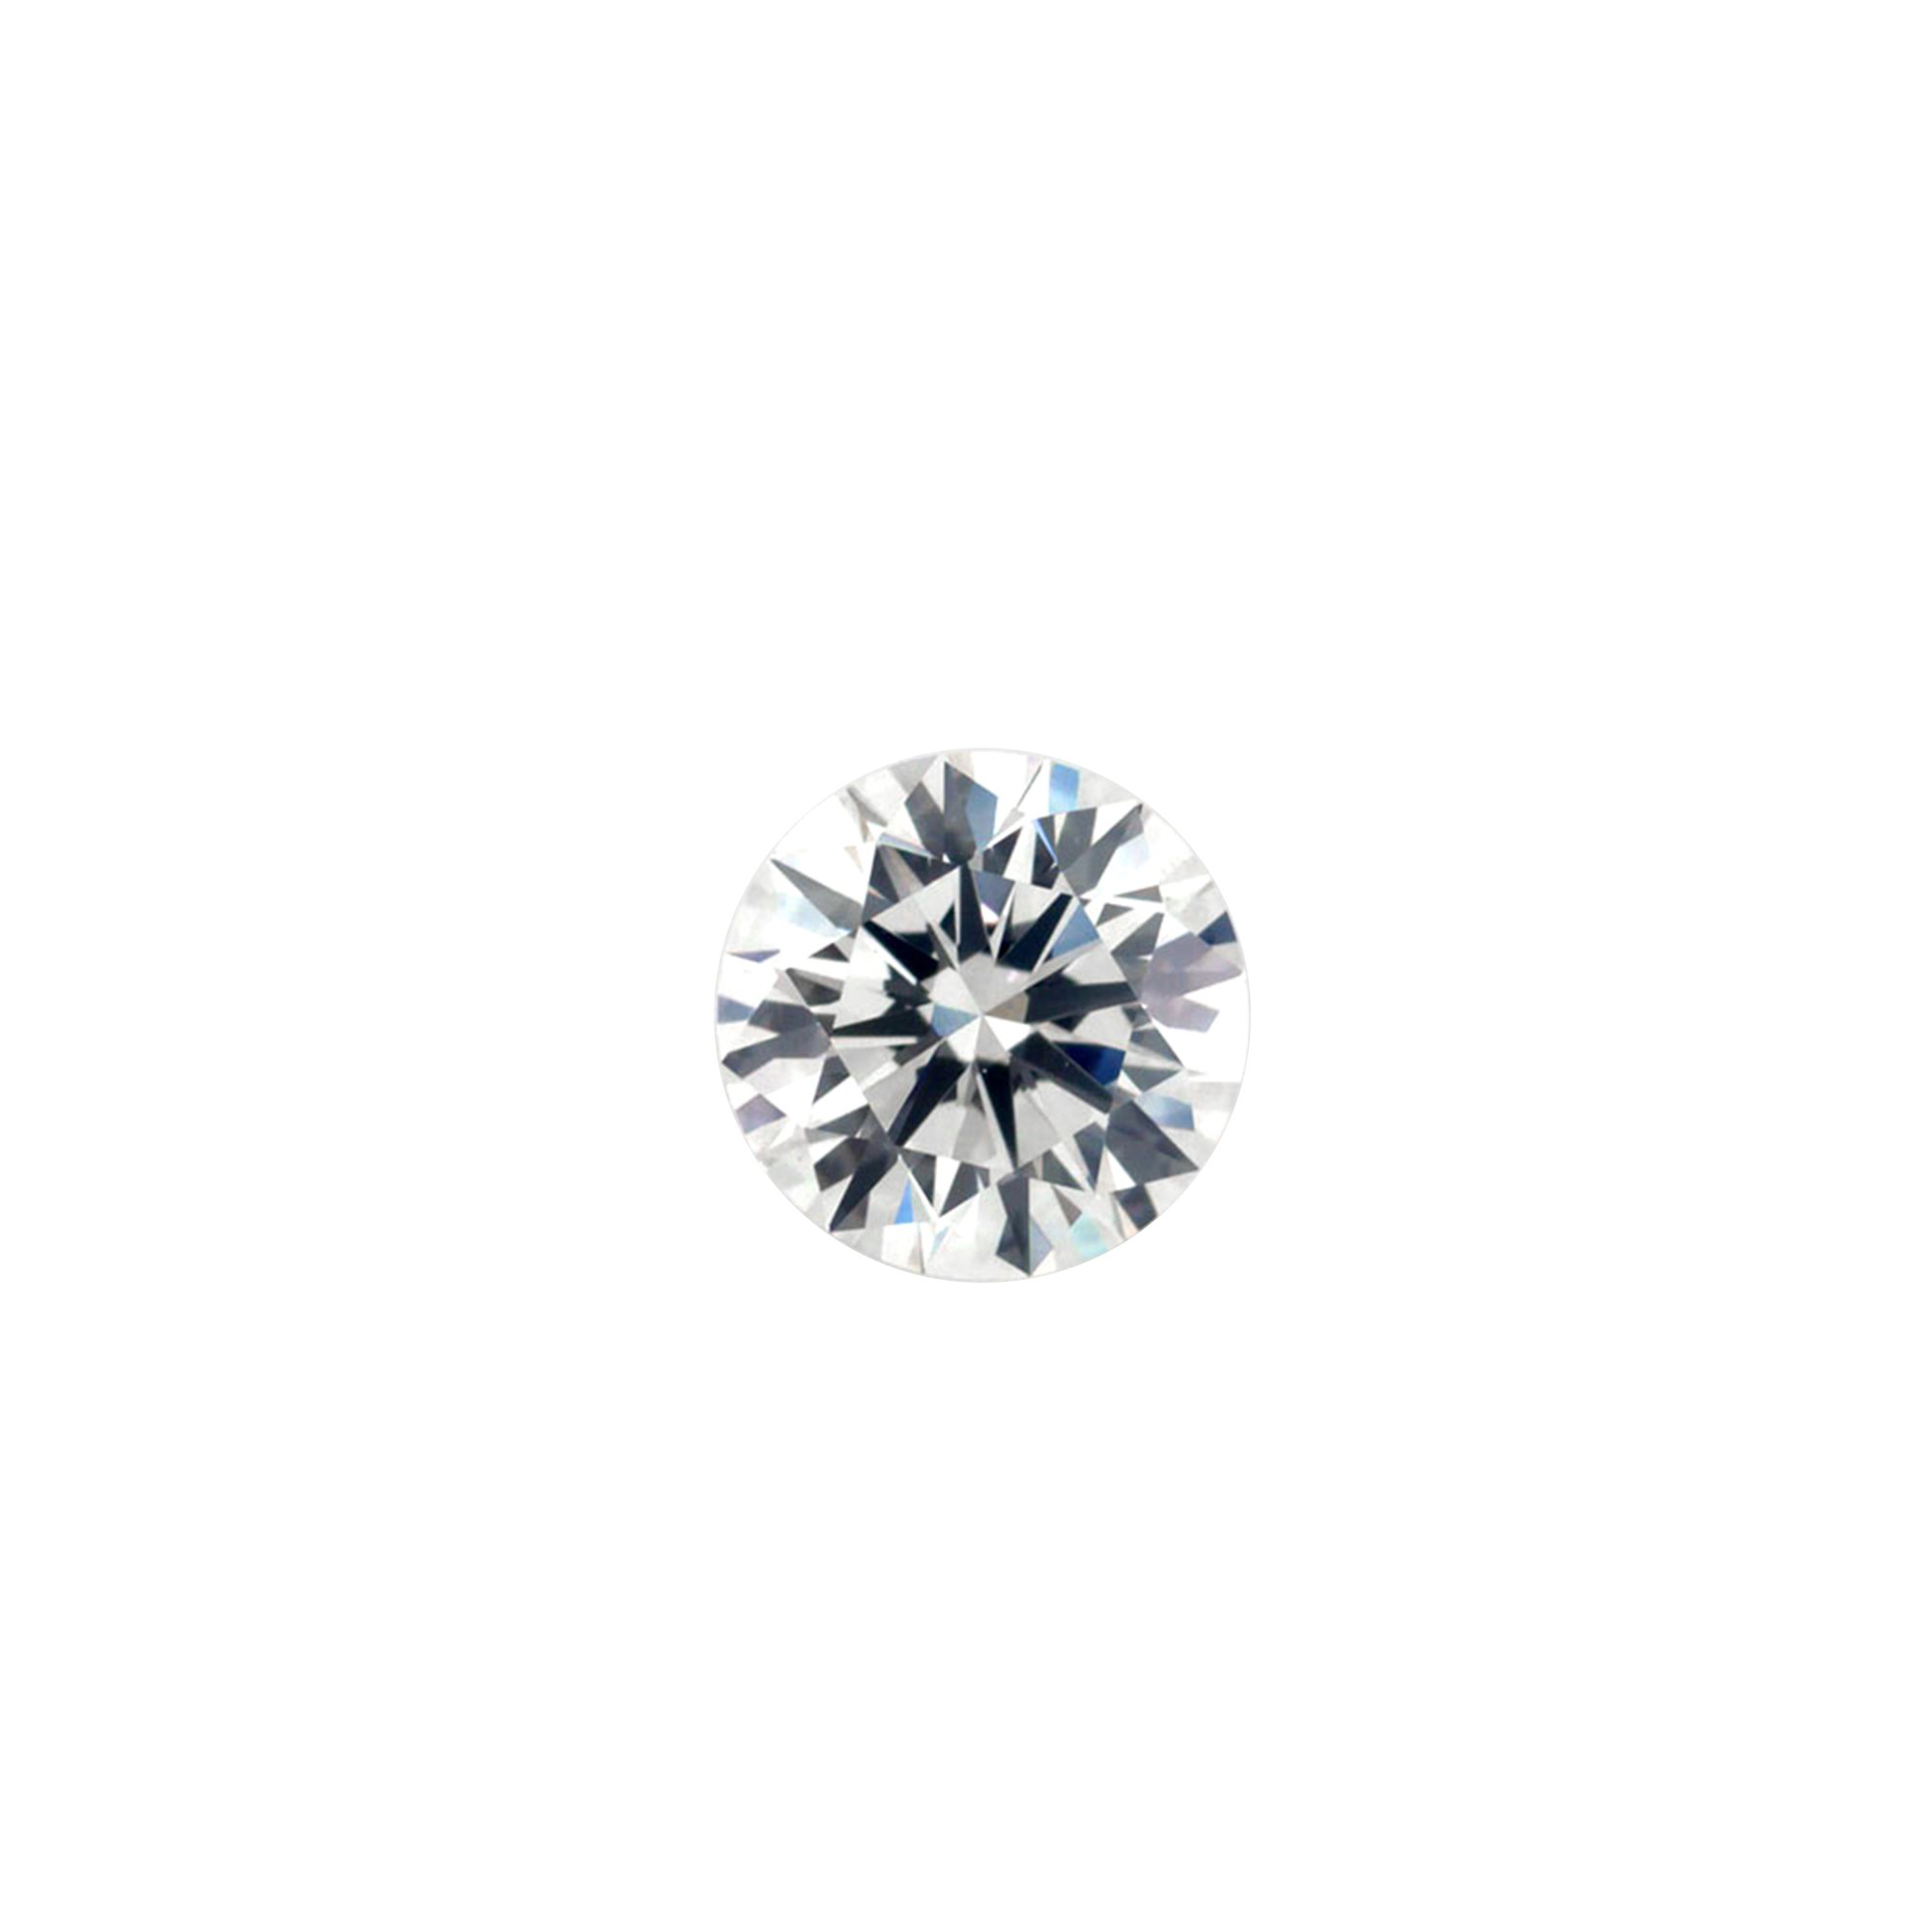 0.045 ct Round Brilliant Cut 2.30 mm G VS2 Loose Diamond Natural Earth-mined